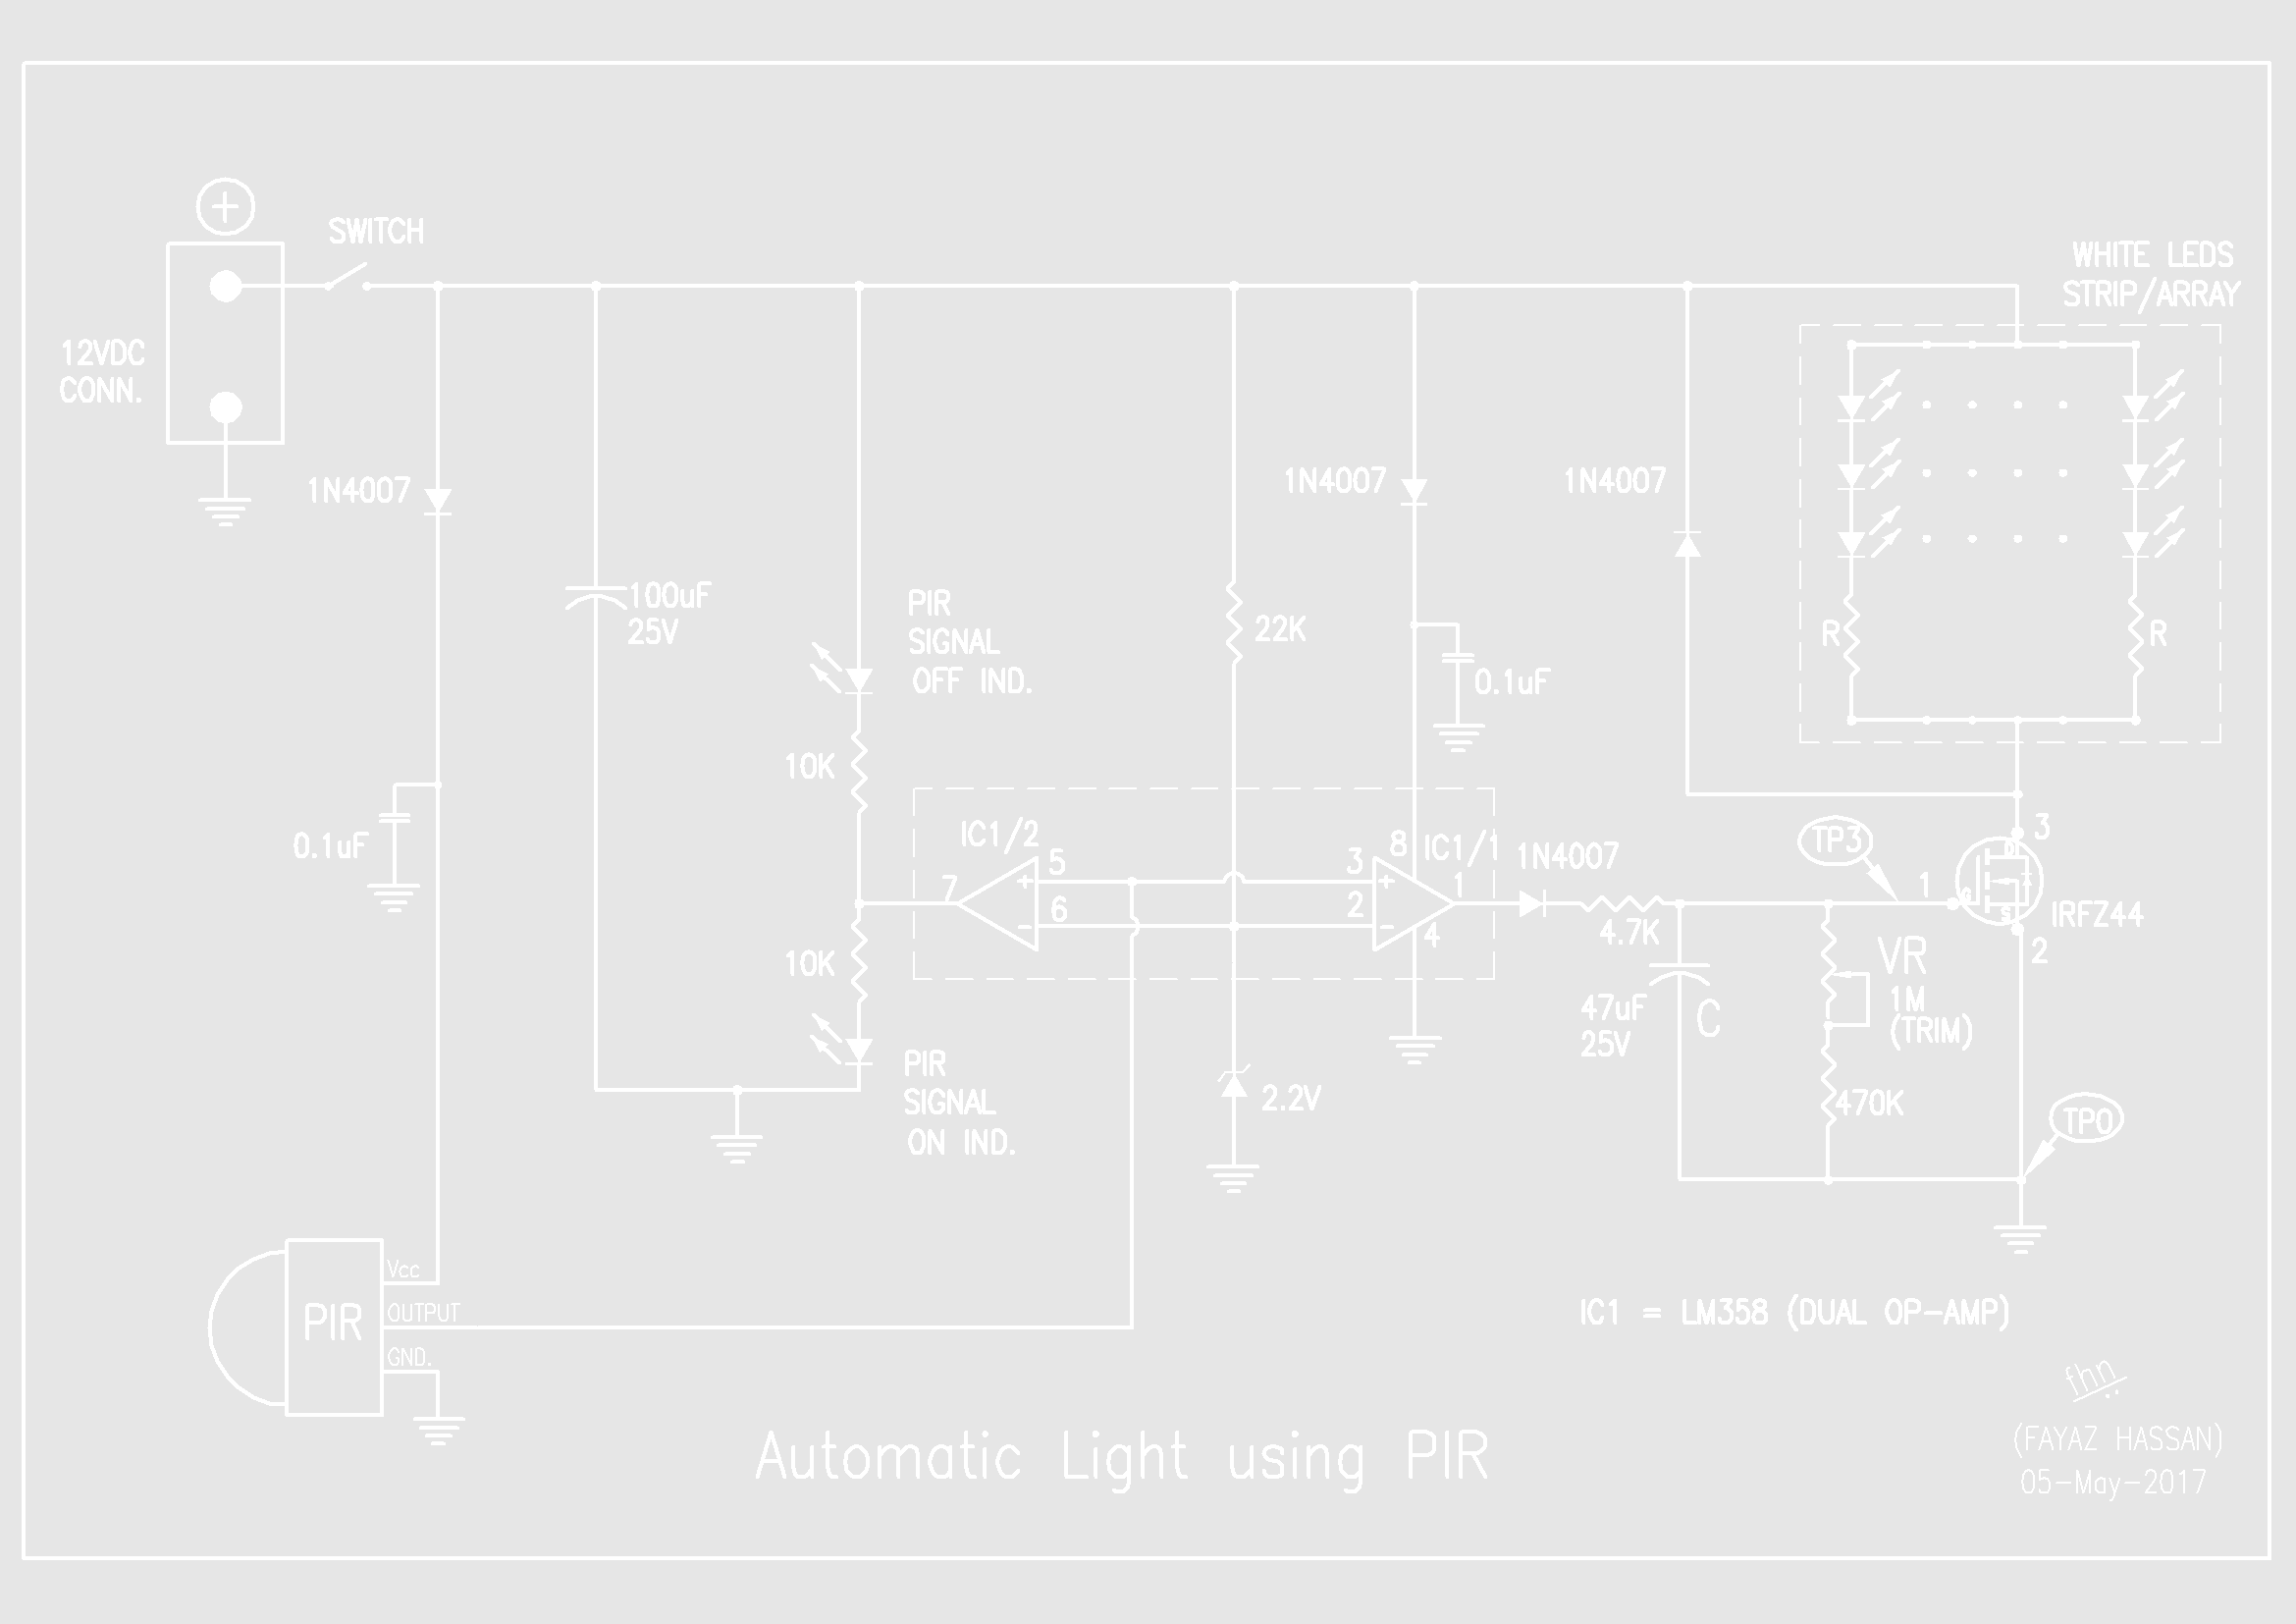 if, any human motion is observed by the pir again, it sends high signal to  op-amp, charges capacitor c and switches on the led strip/array through  mosfet